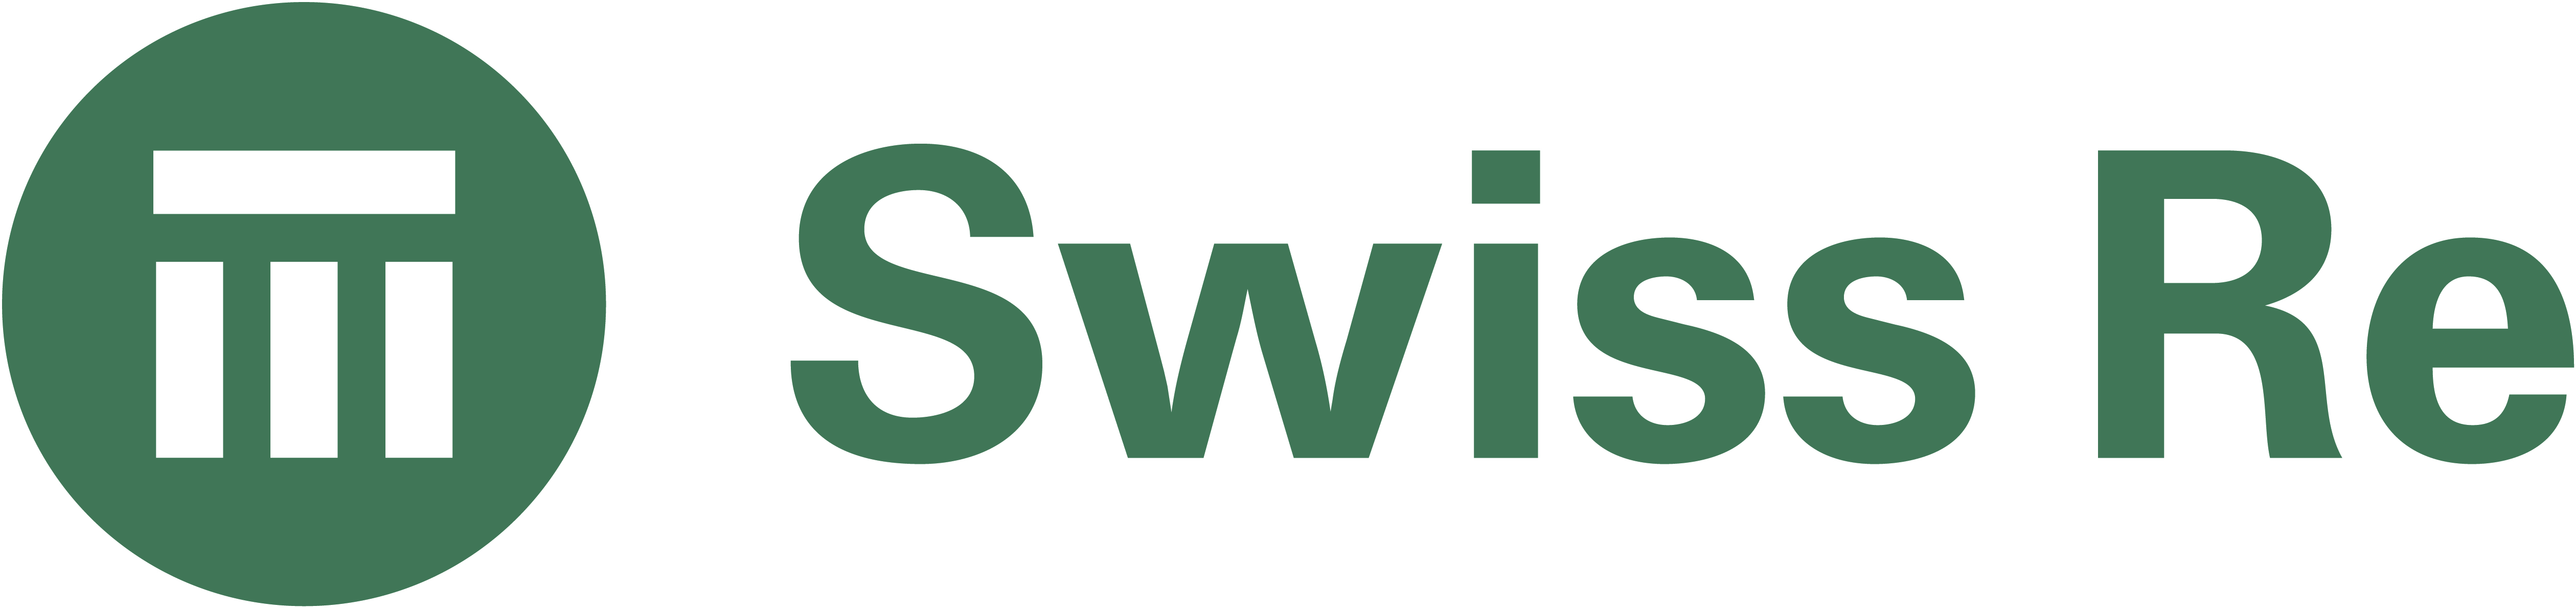 kissclipart-swiss-re-logo-clipart-logo-swiss-re-switzerland-f362dfa97354126e